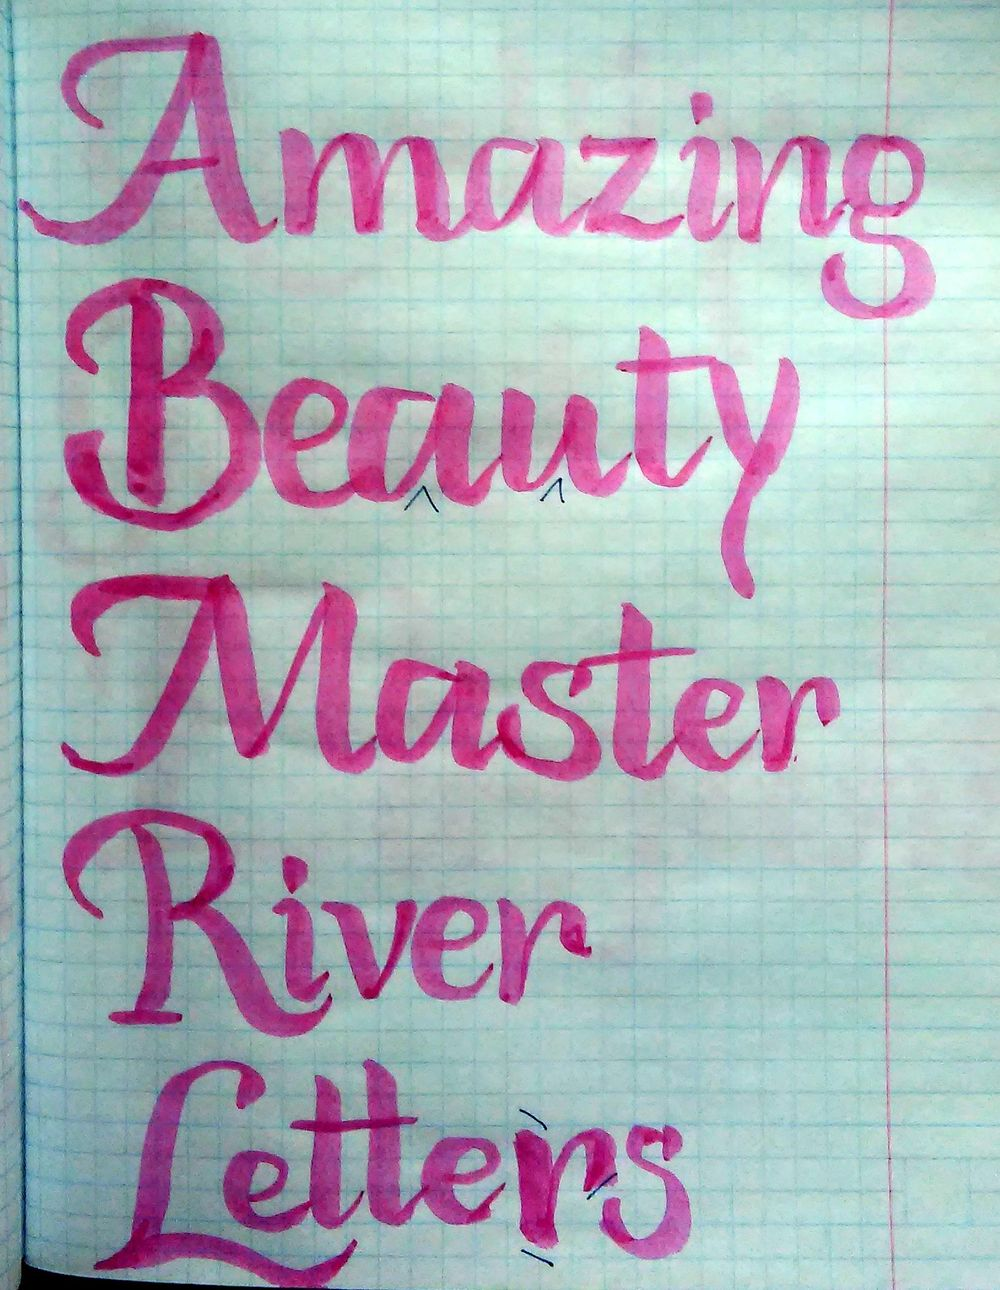 Watercolor brush writing - image 1 - student project